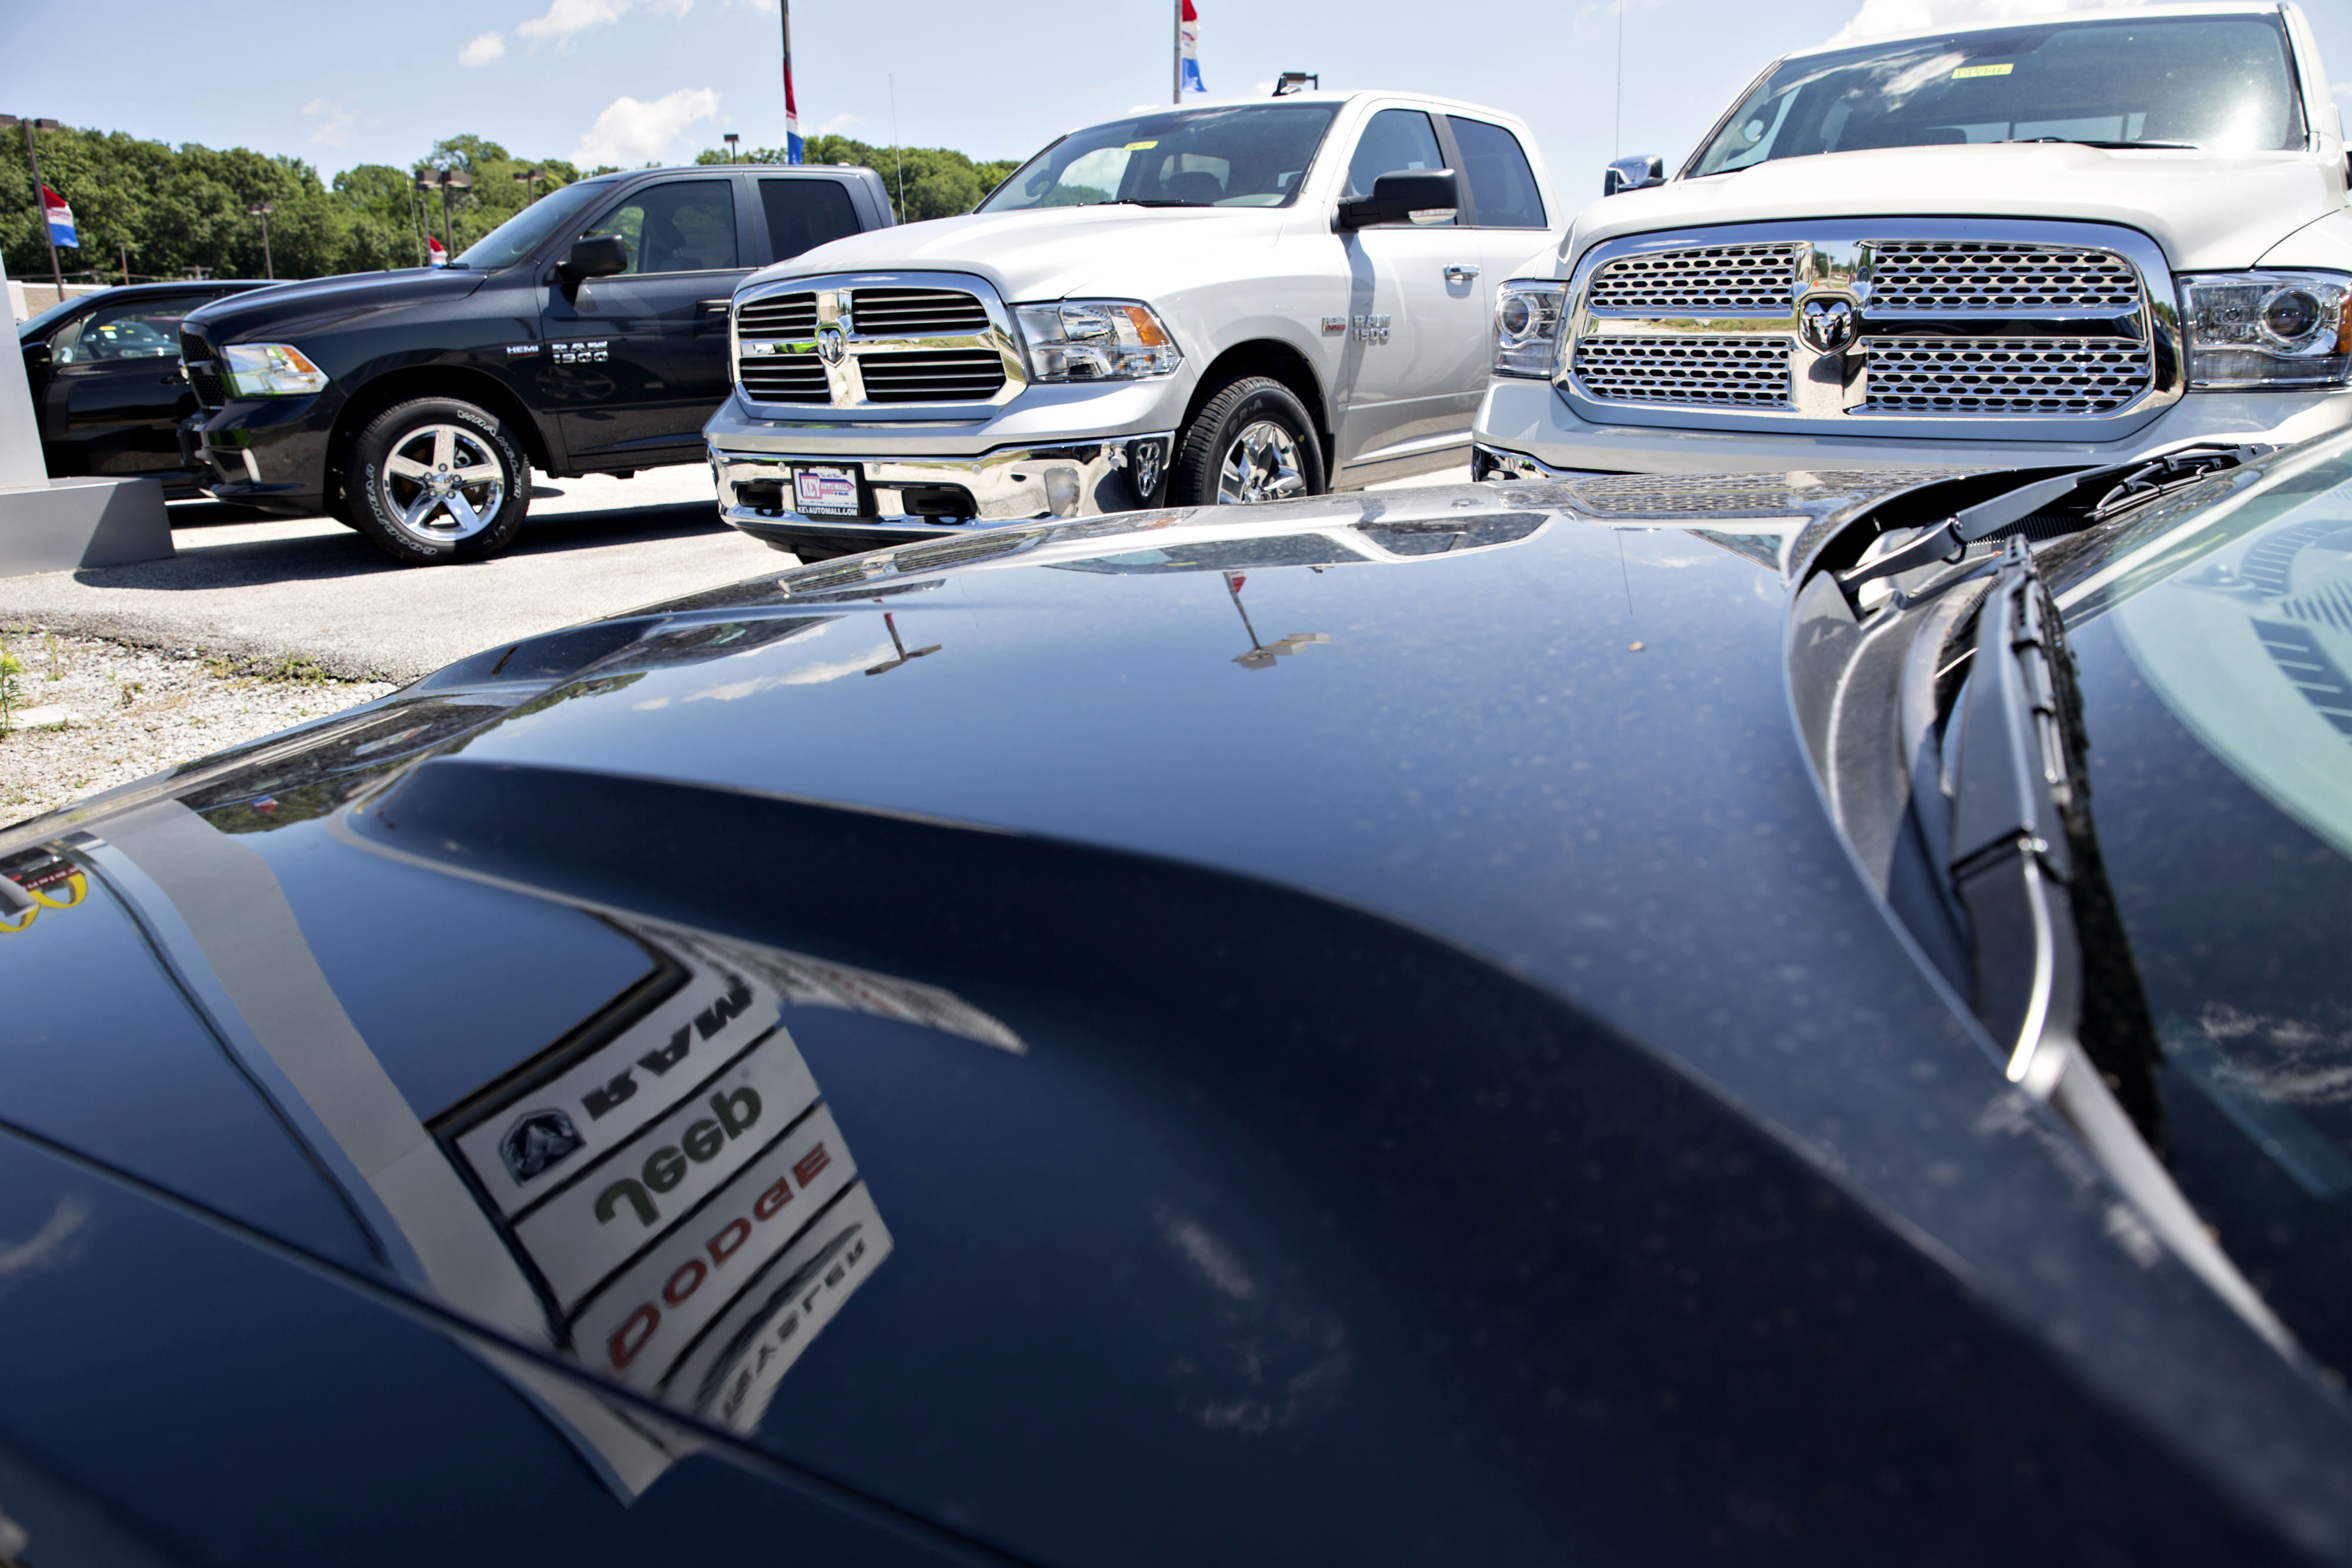 Fiat Chrysler Settles In Lawsuit Over Sel Emissions Cheating